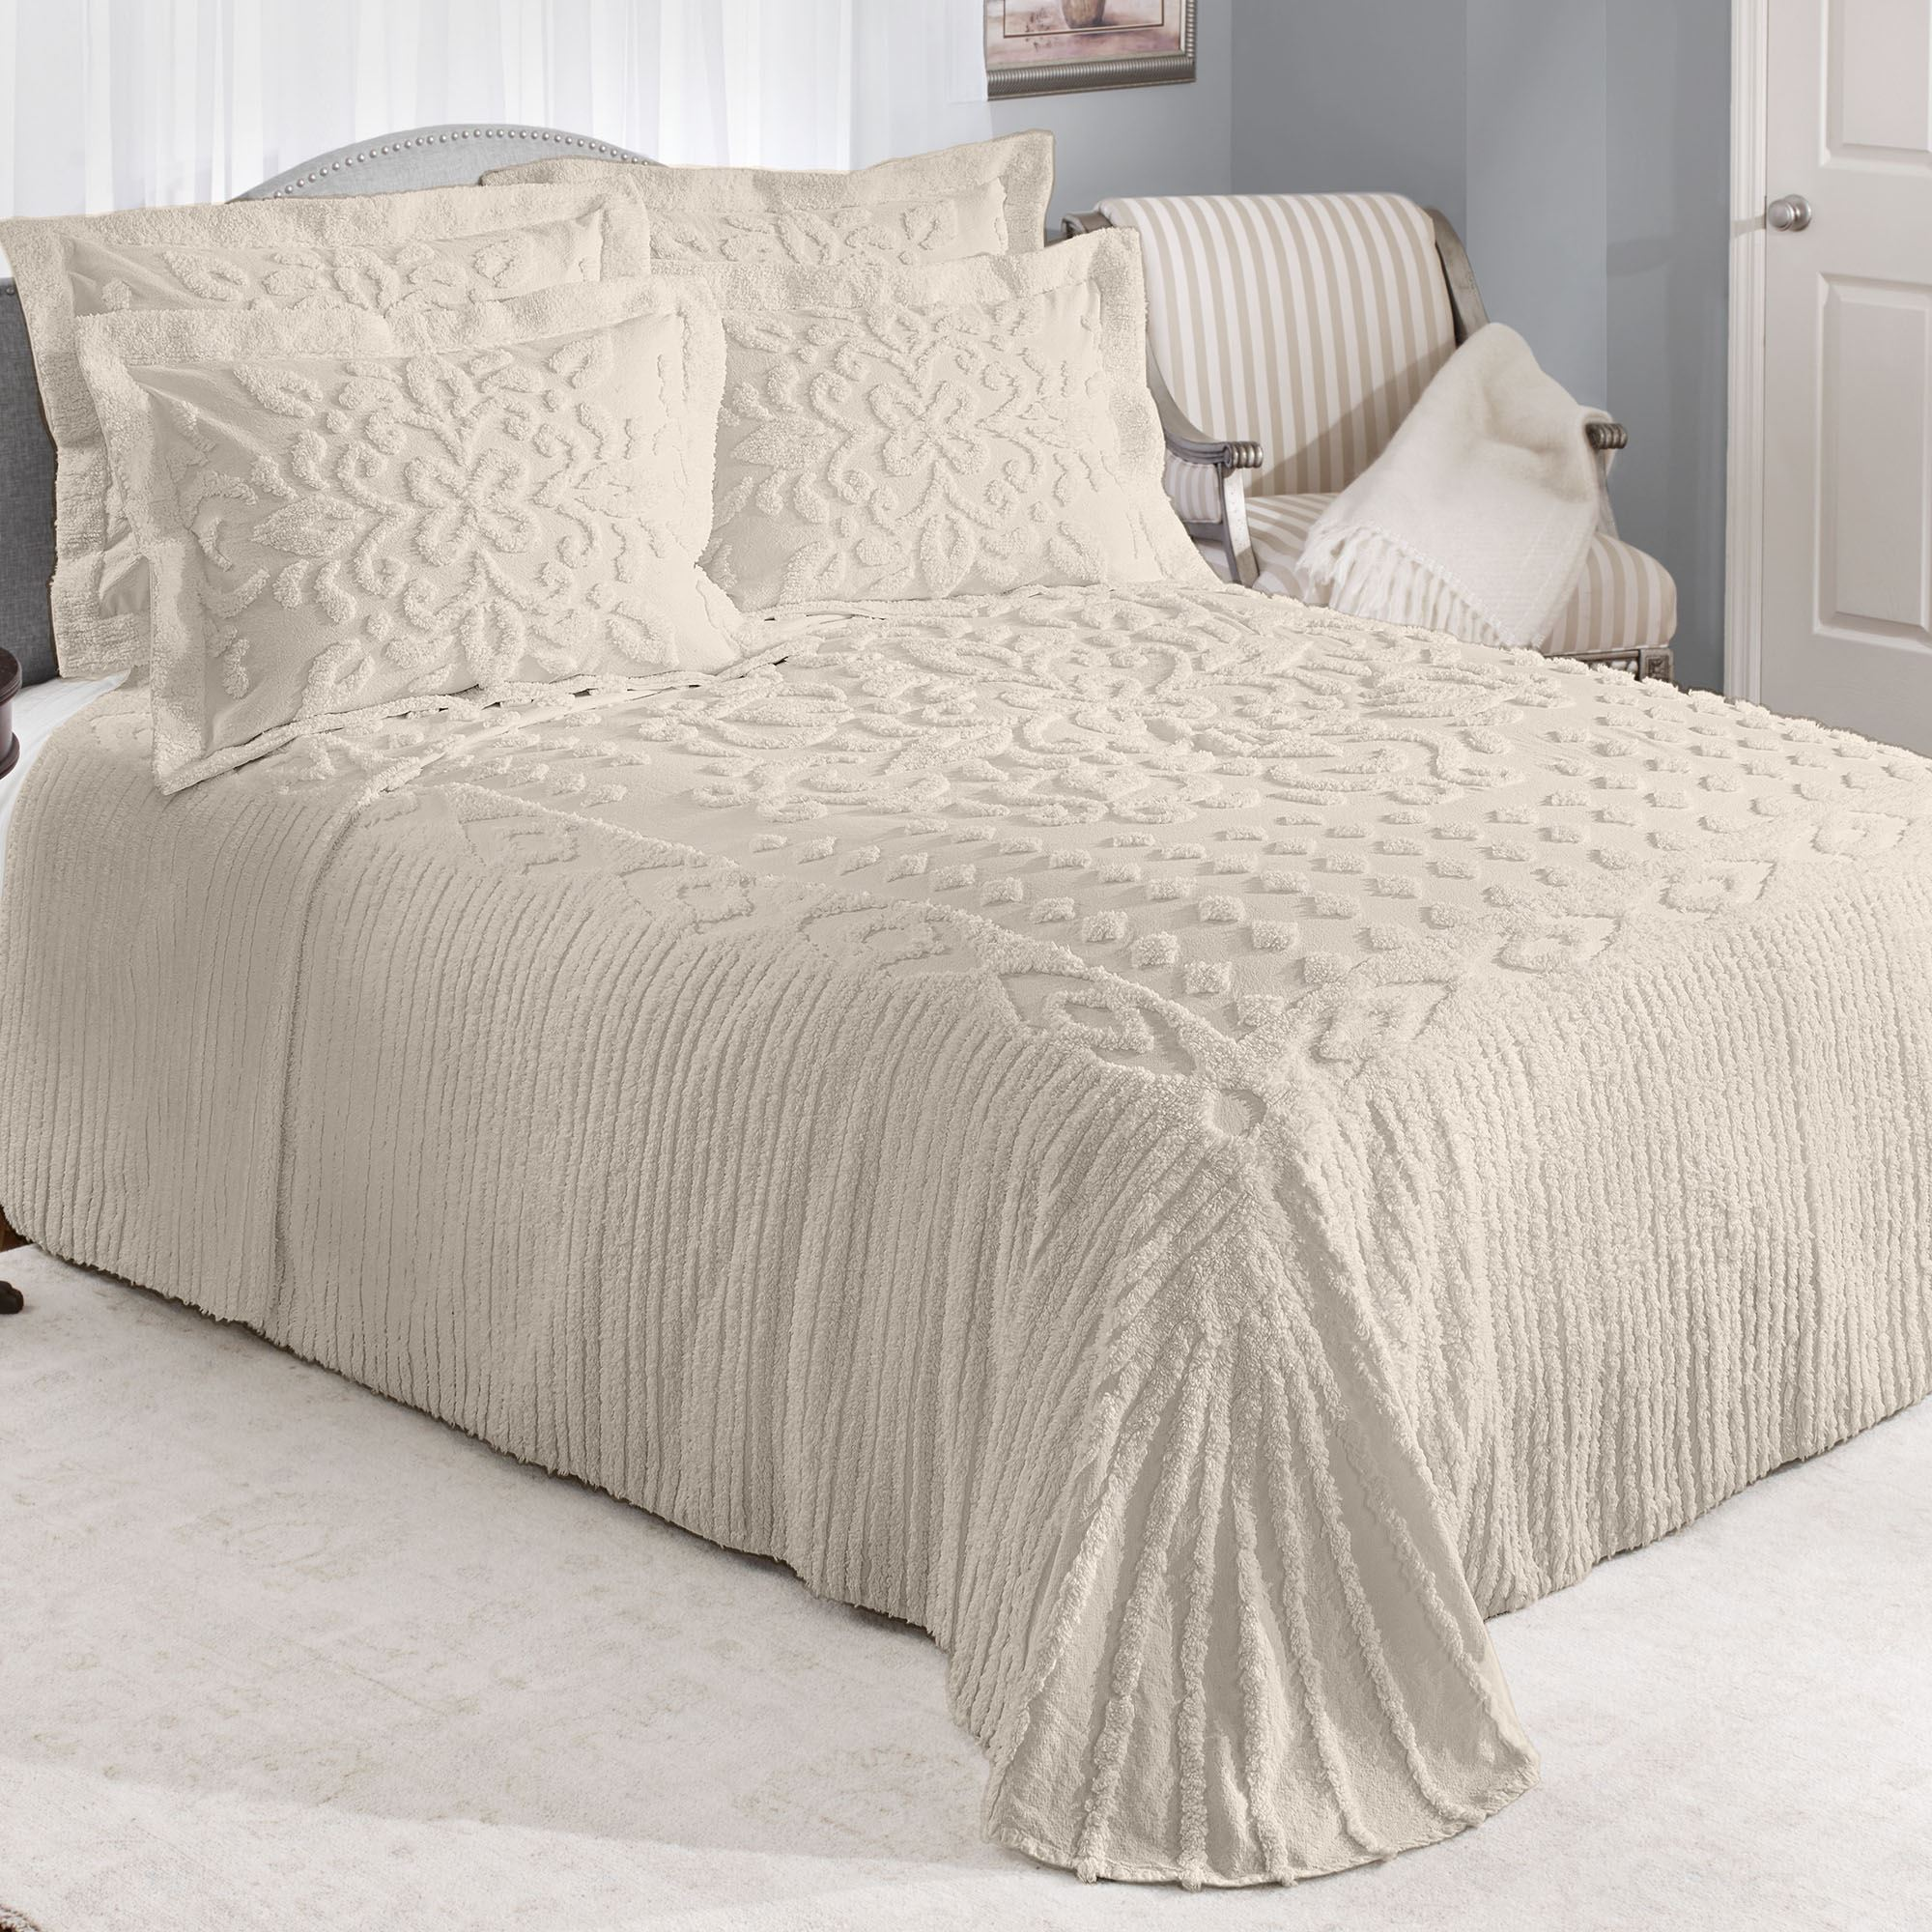 Silvia Solid Color Cotton Chenille Bedspread Bedding